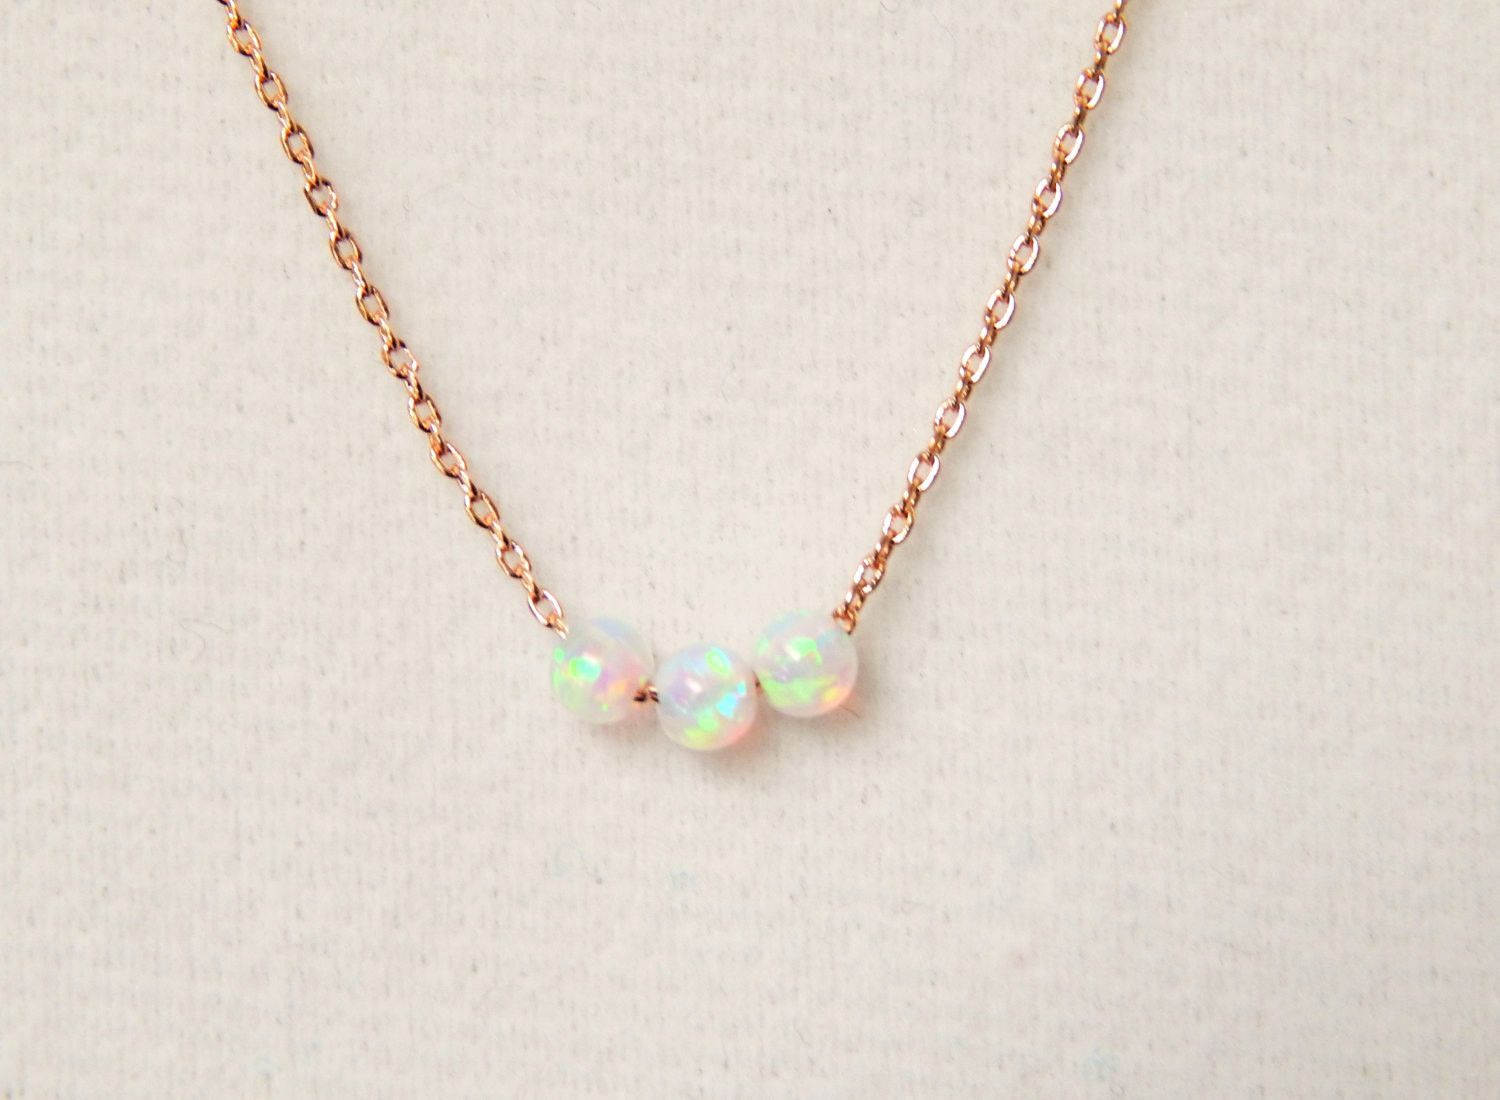 Rose Gold and White Opal Necklace Simple Elegant Necklaces